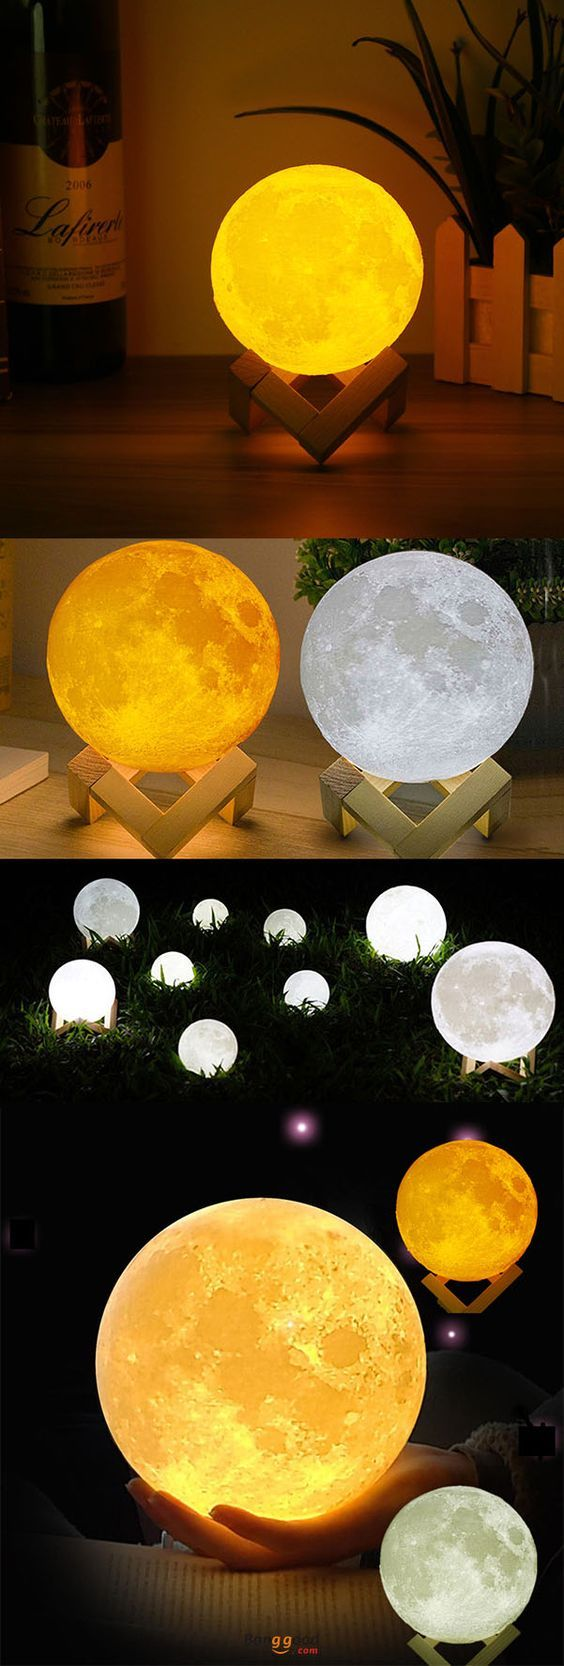 US$12.99 + Free shipping. 12cm Magical Two Tone Moon Lamp ...